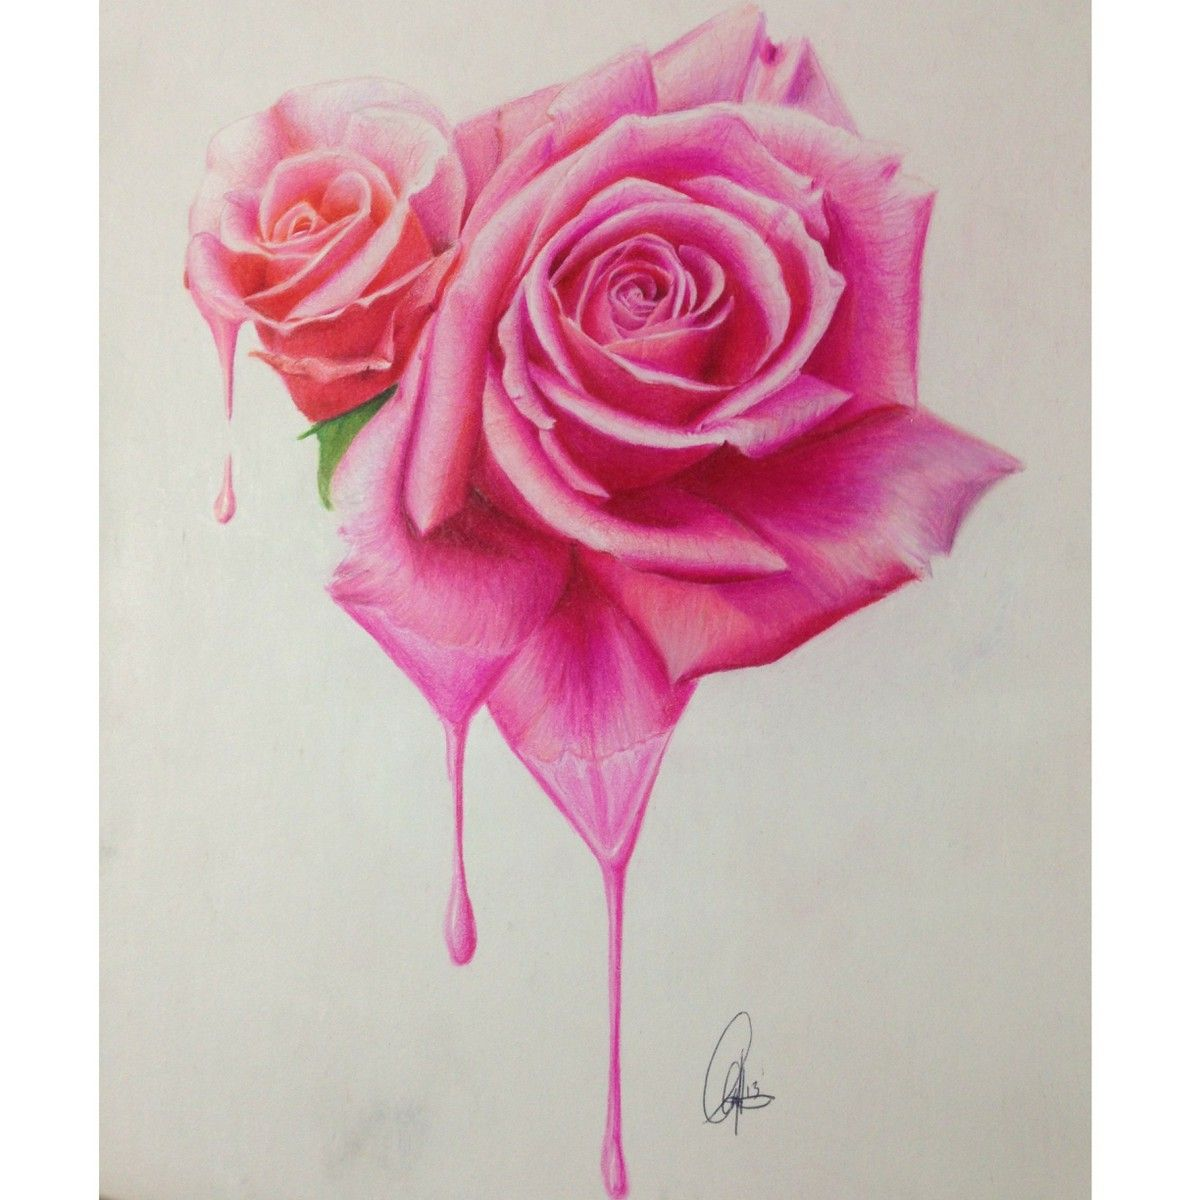 Prisma Colored Pencils Artwork Roses Crying Art